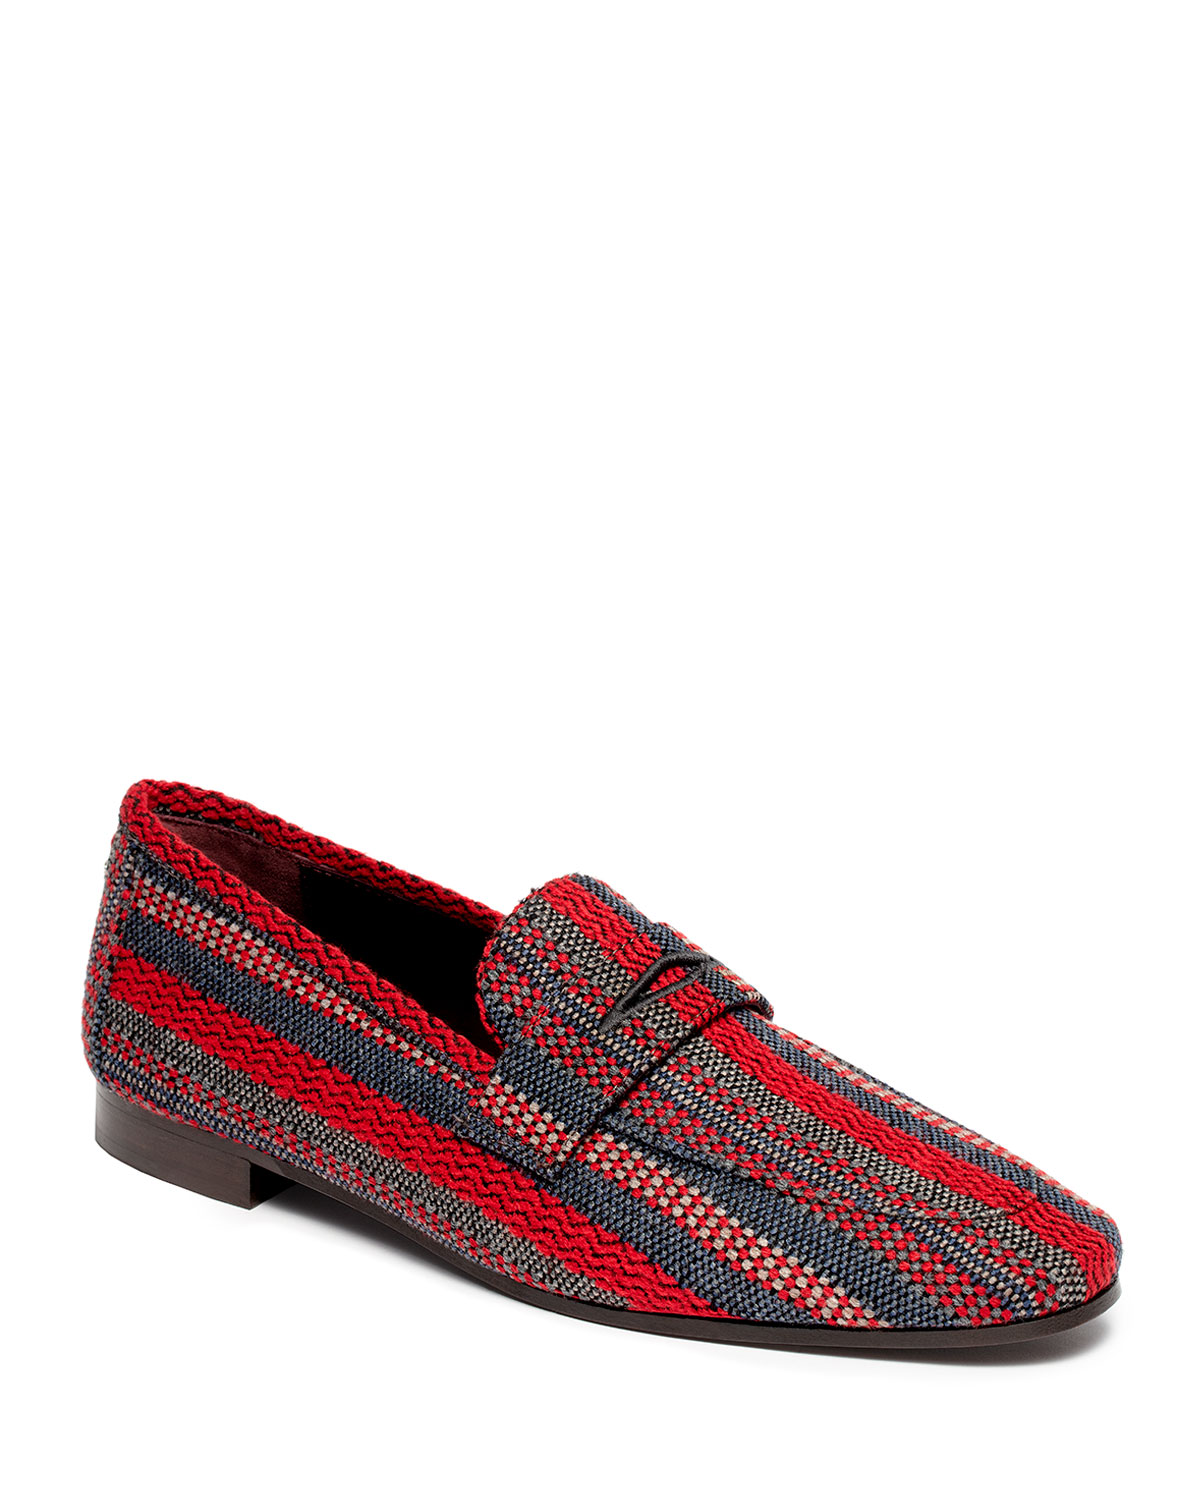 Striped Tweed Penny Loafers